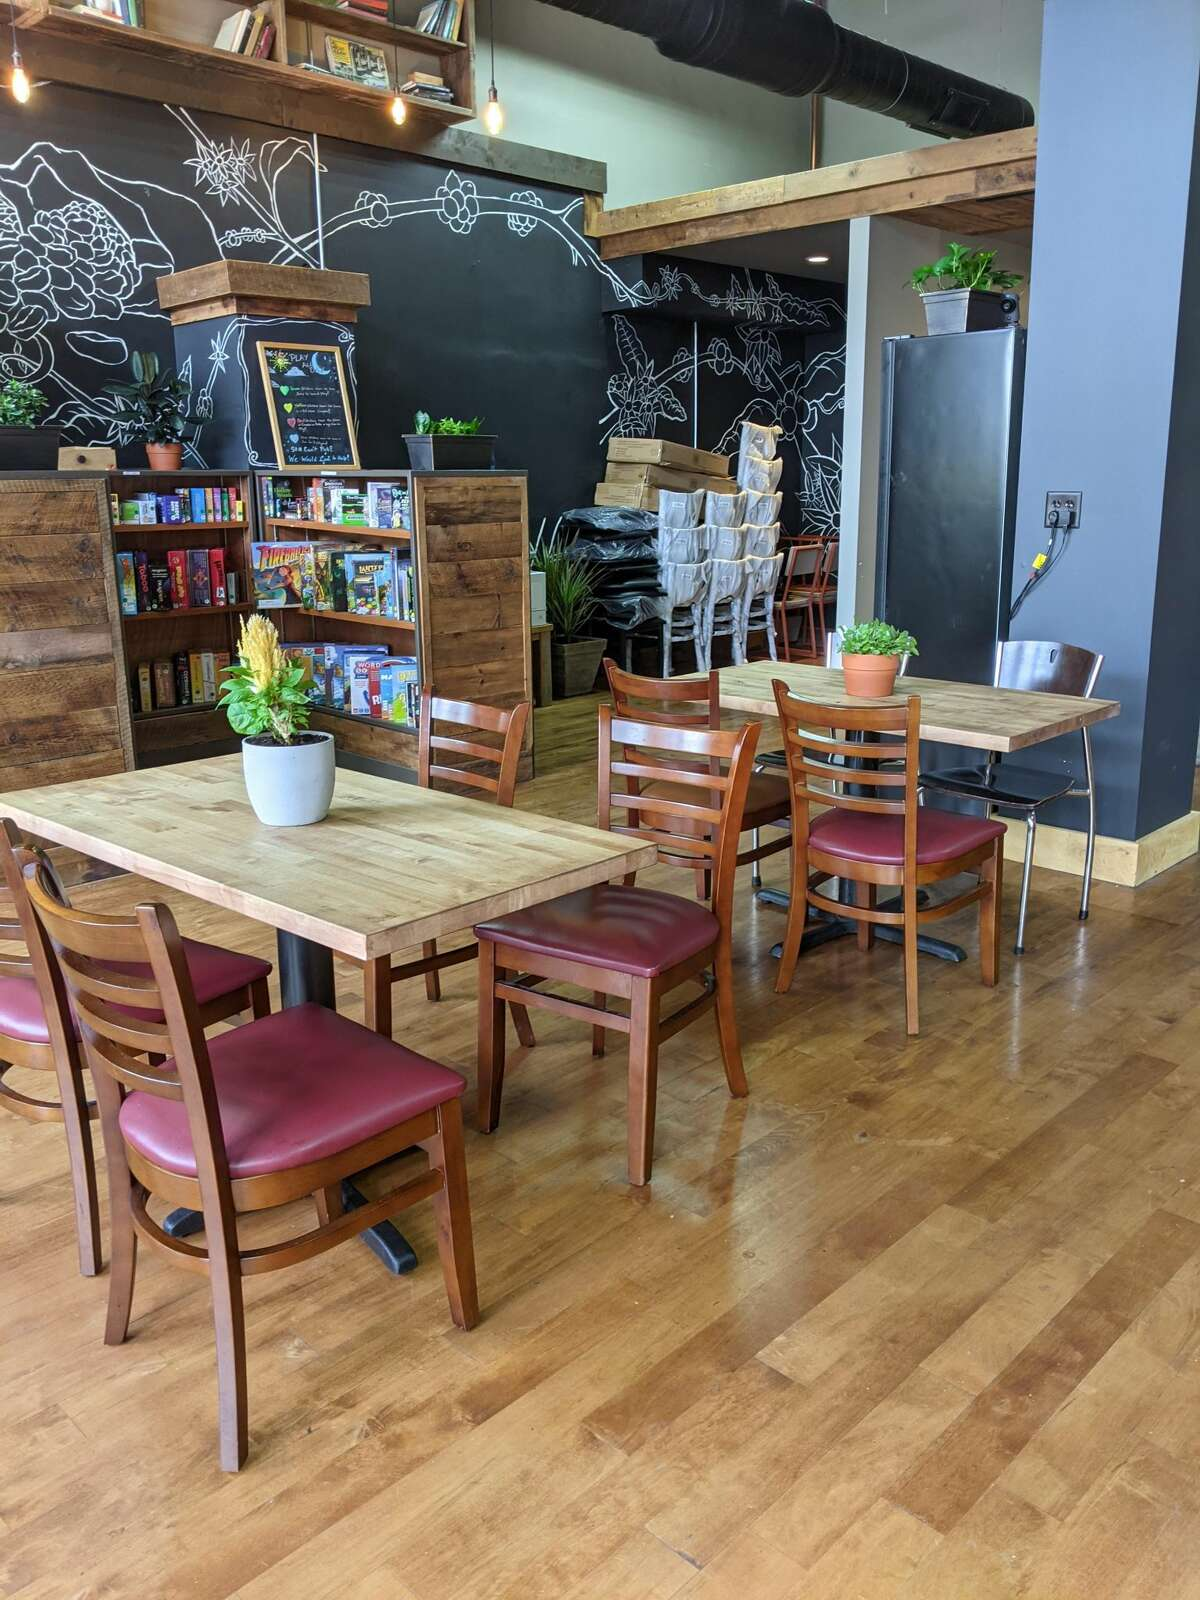 Bard & Baker Albany officially opened Oct. 1 at 1034 Madison Ave. next door to The Madison Theatre. The original cafe opened in troy three years ago,